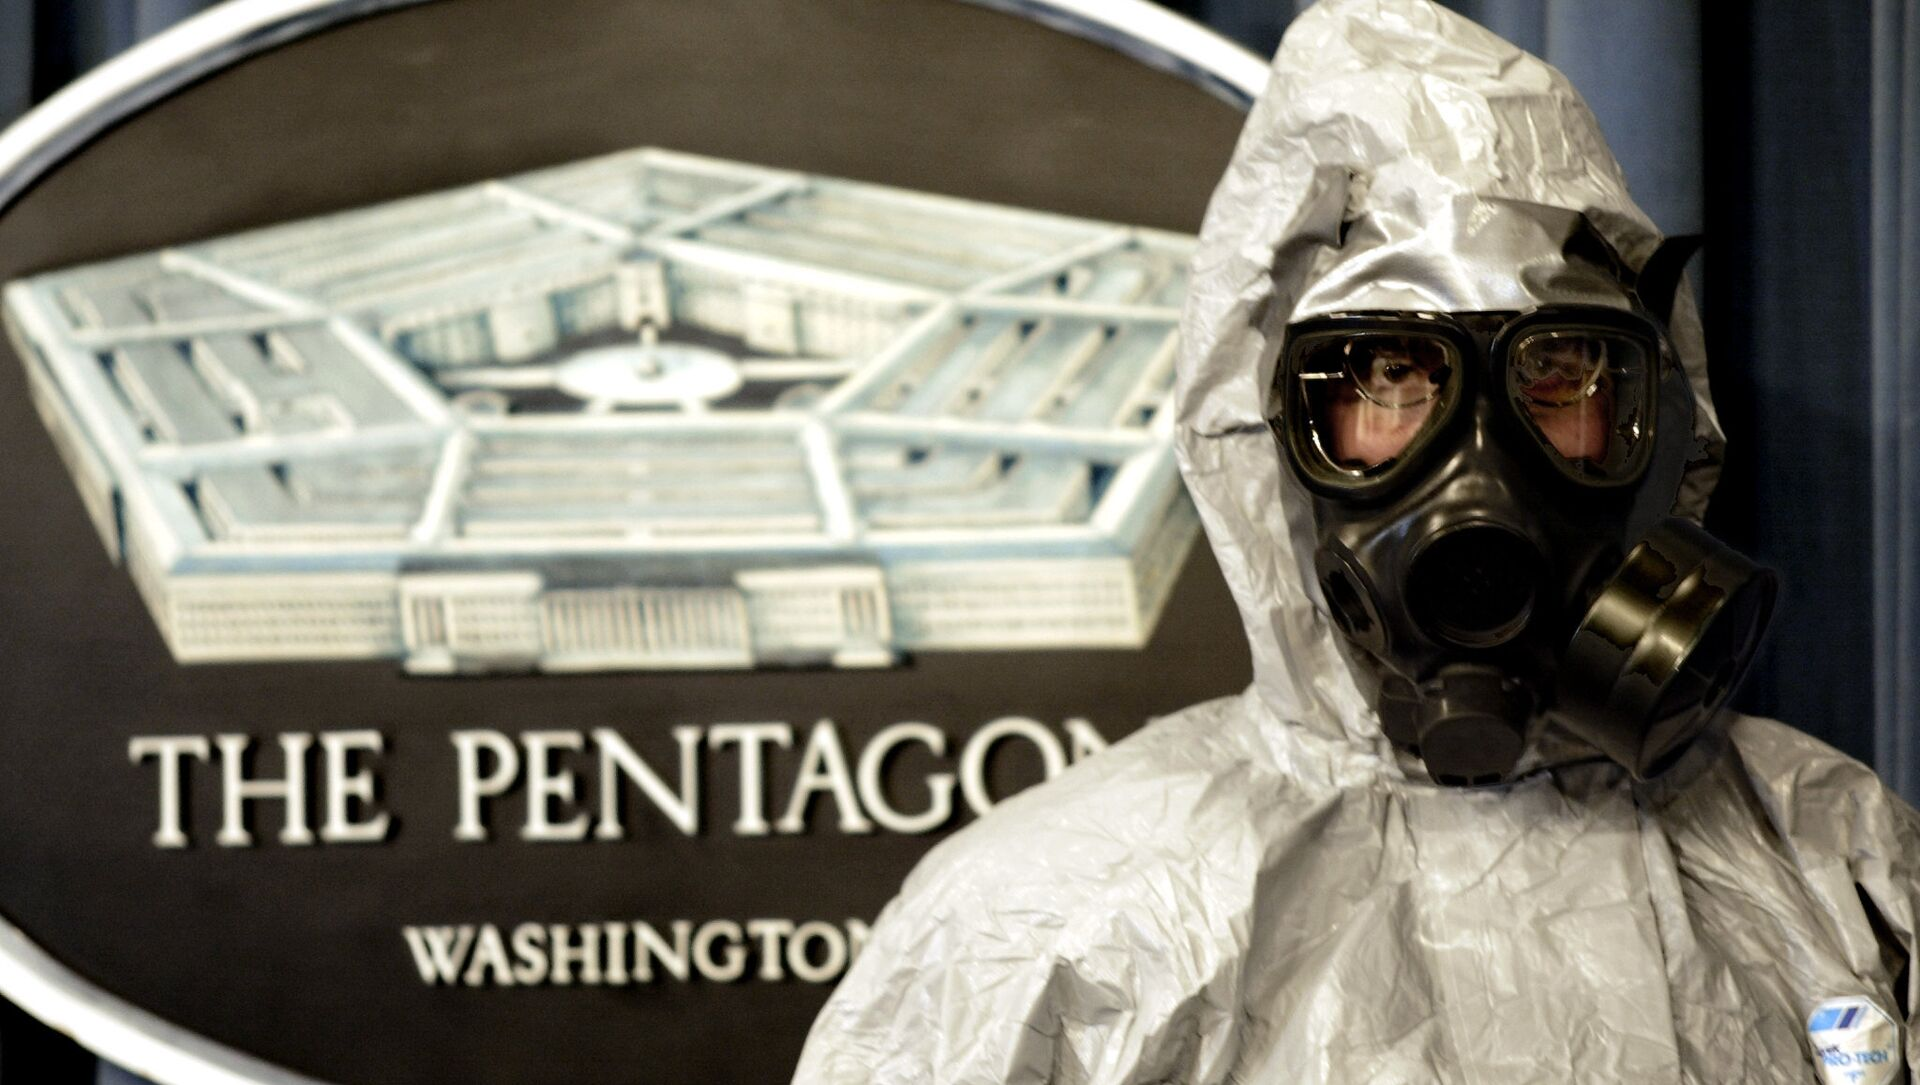 A member of the US Army Technical Escort Unit (TSU) demonstrates a hazmat suit as they show some of their response capabilities to chemical and biological operations in support of the US Department of Defense, federal, state, and local agencies 12 November 2002. - Sputnik International, 1920, 06.09.2021